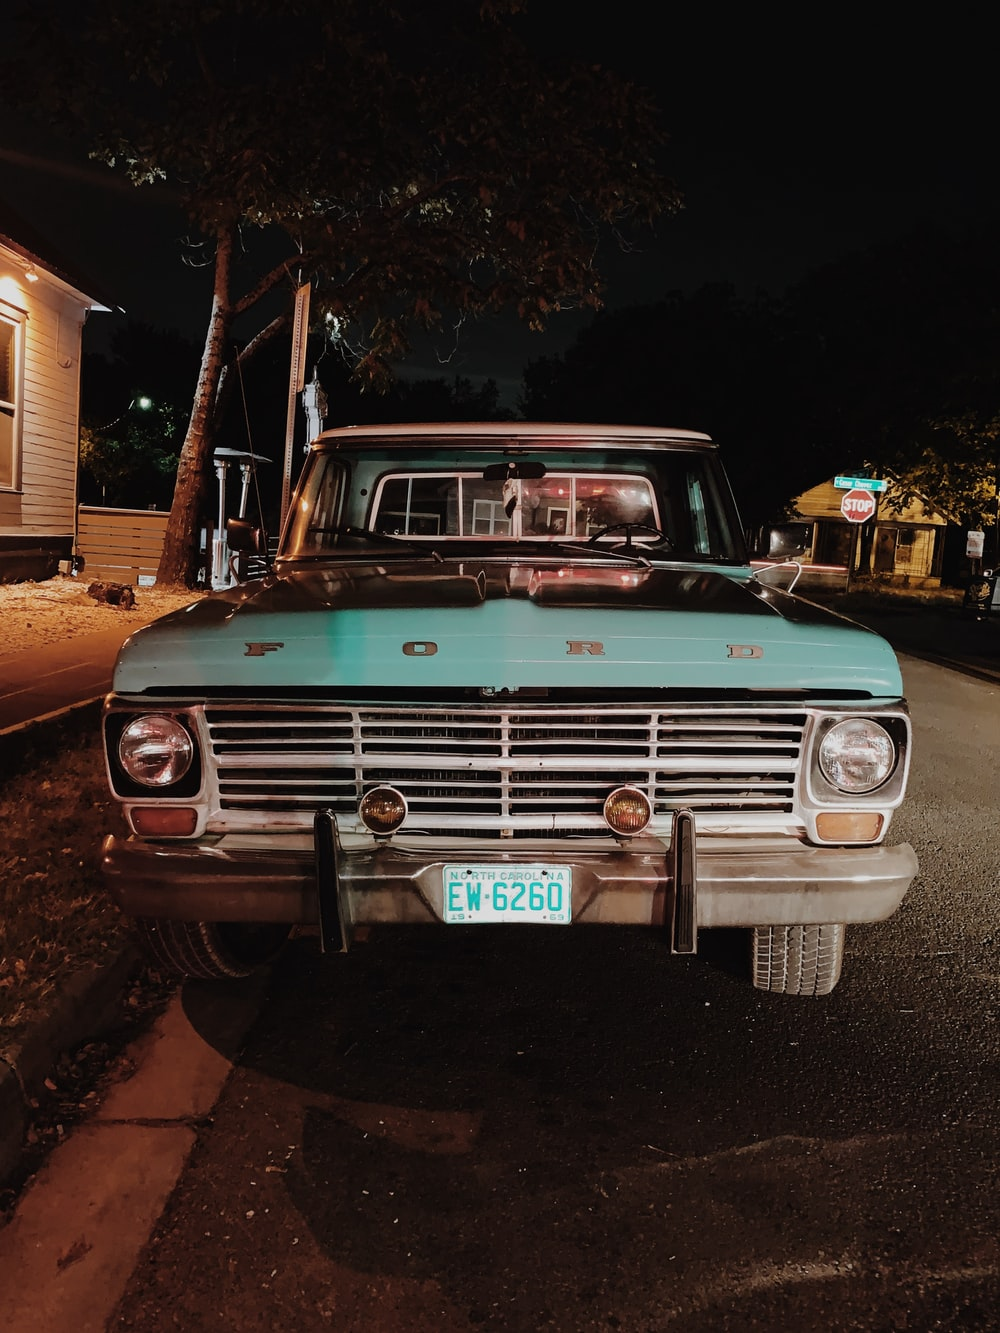 teal Ford car parked outside white house at night